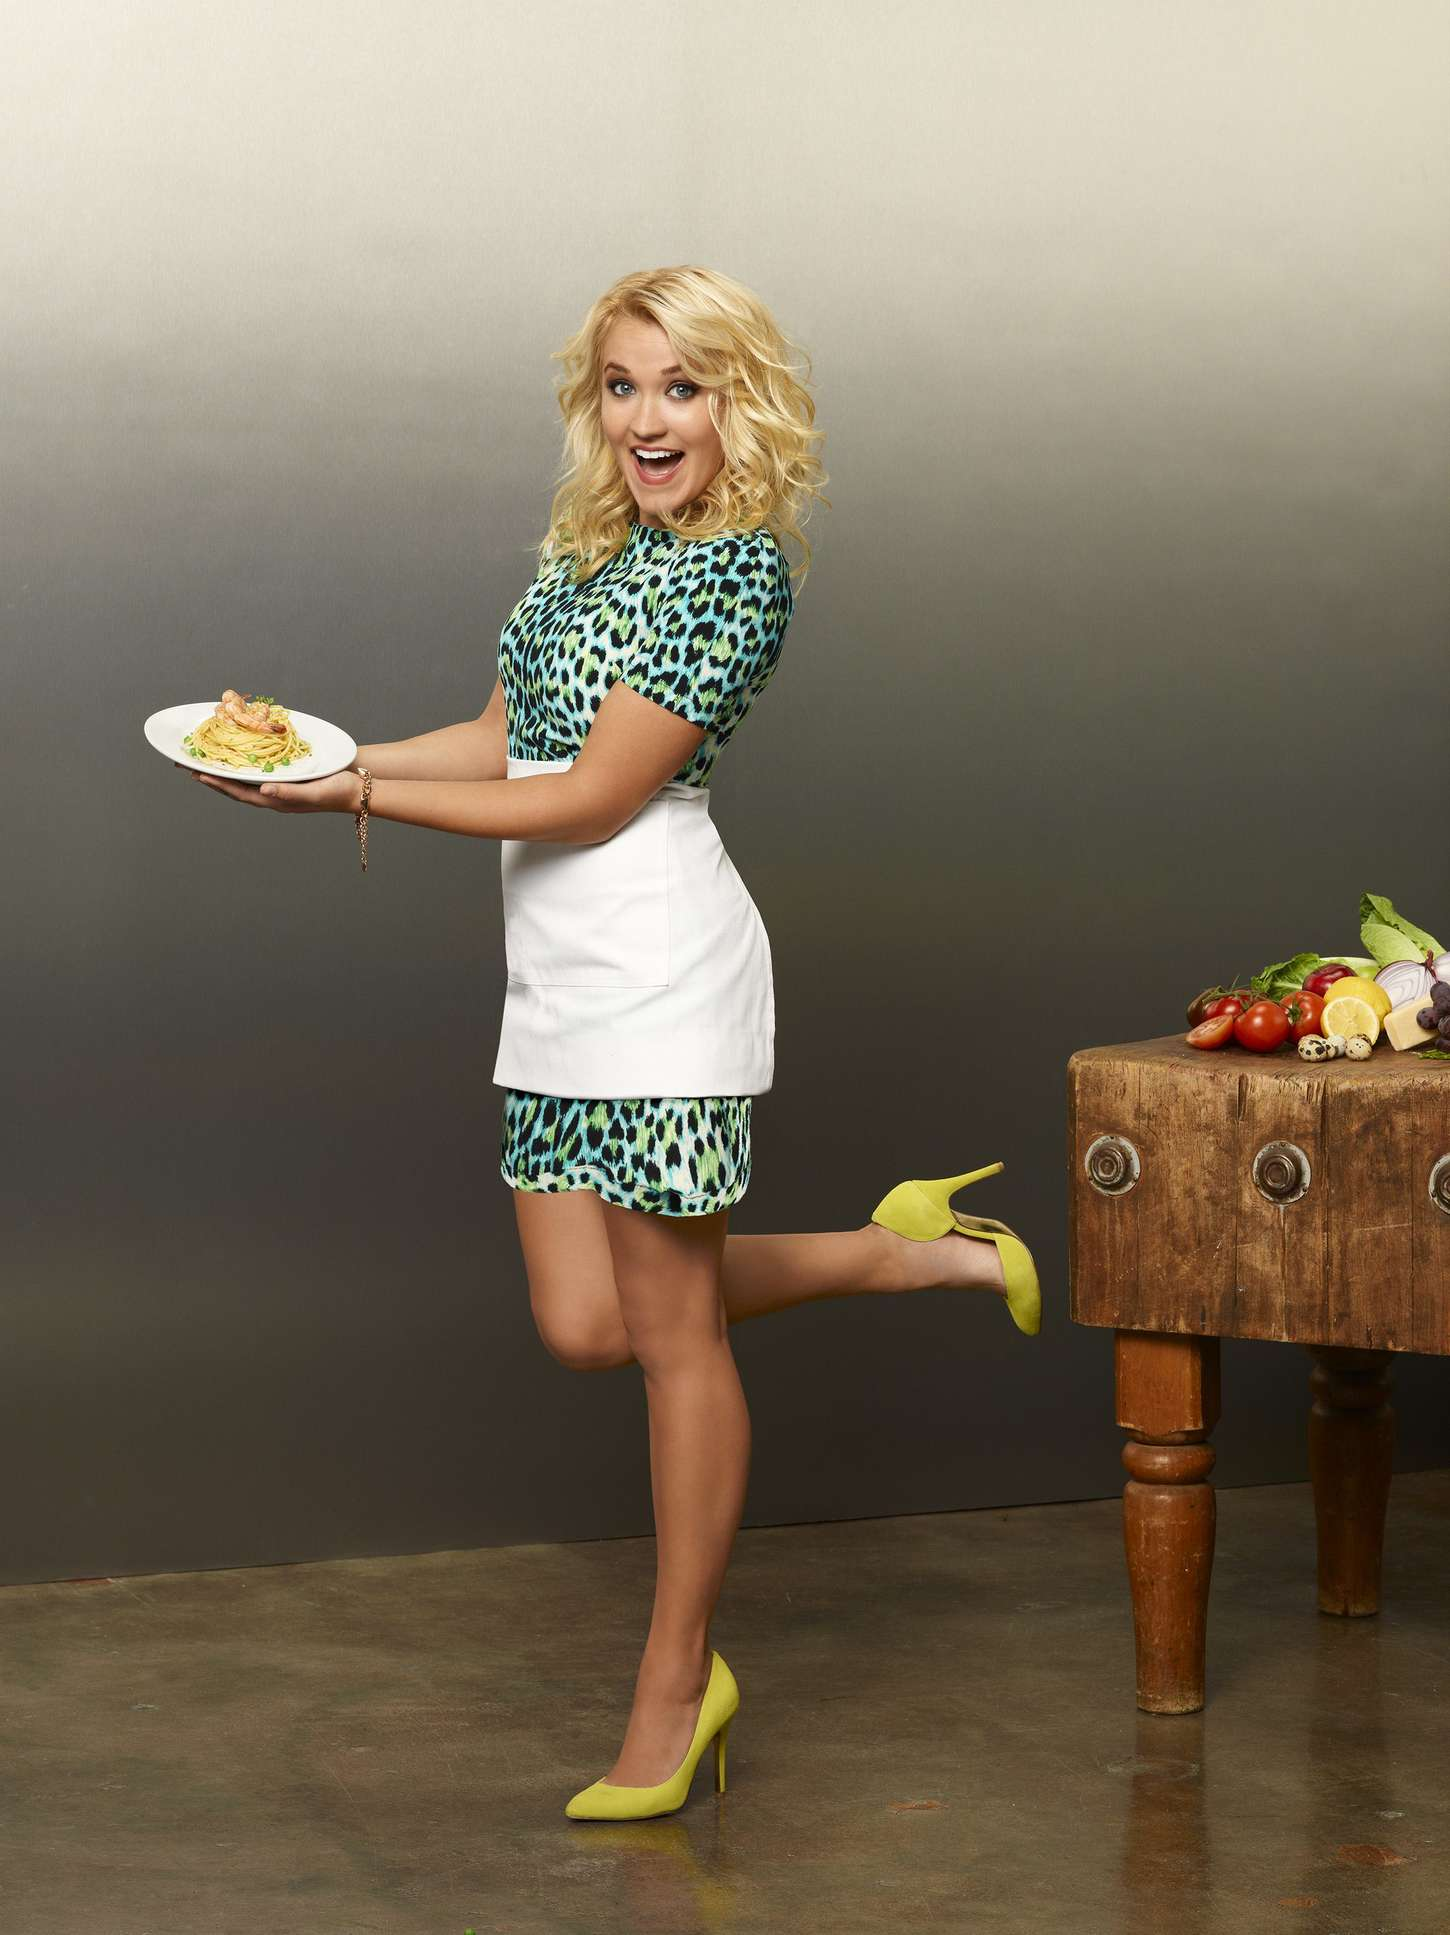 Emily Osment Young Hungry Season Promos